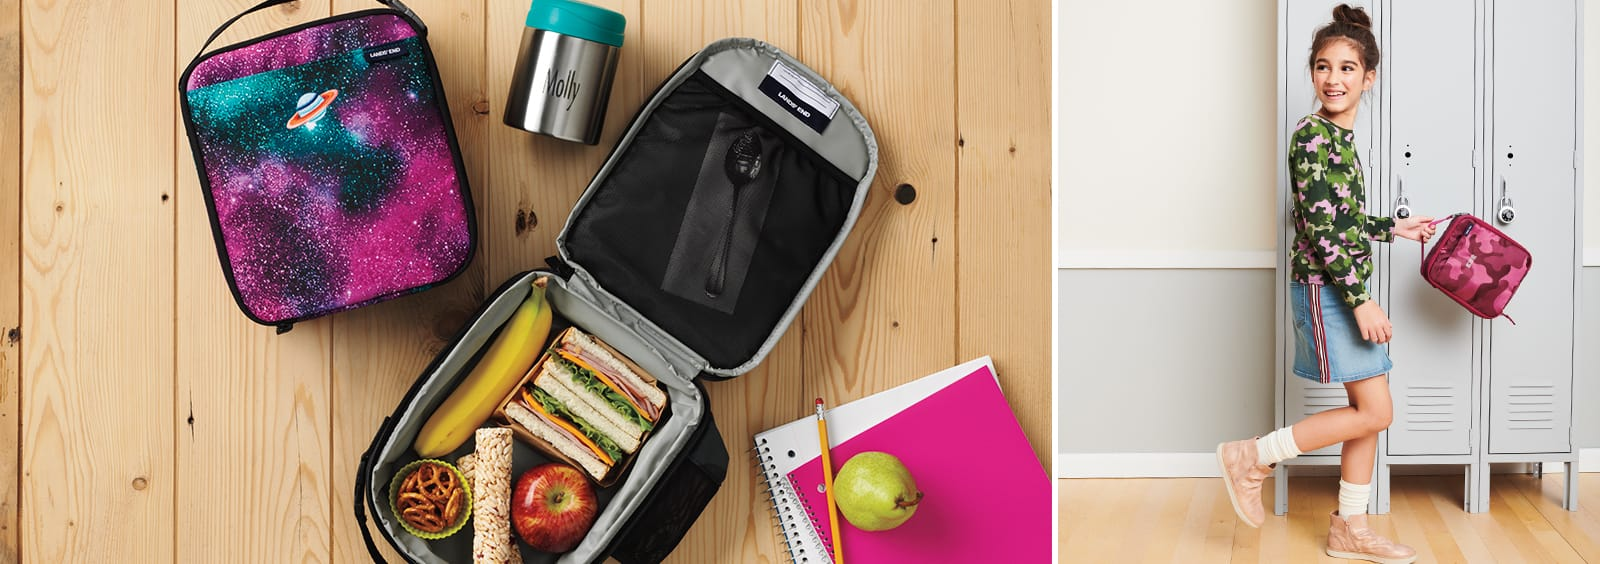 Lunch Box Surprises to Make Their Day